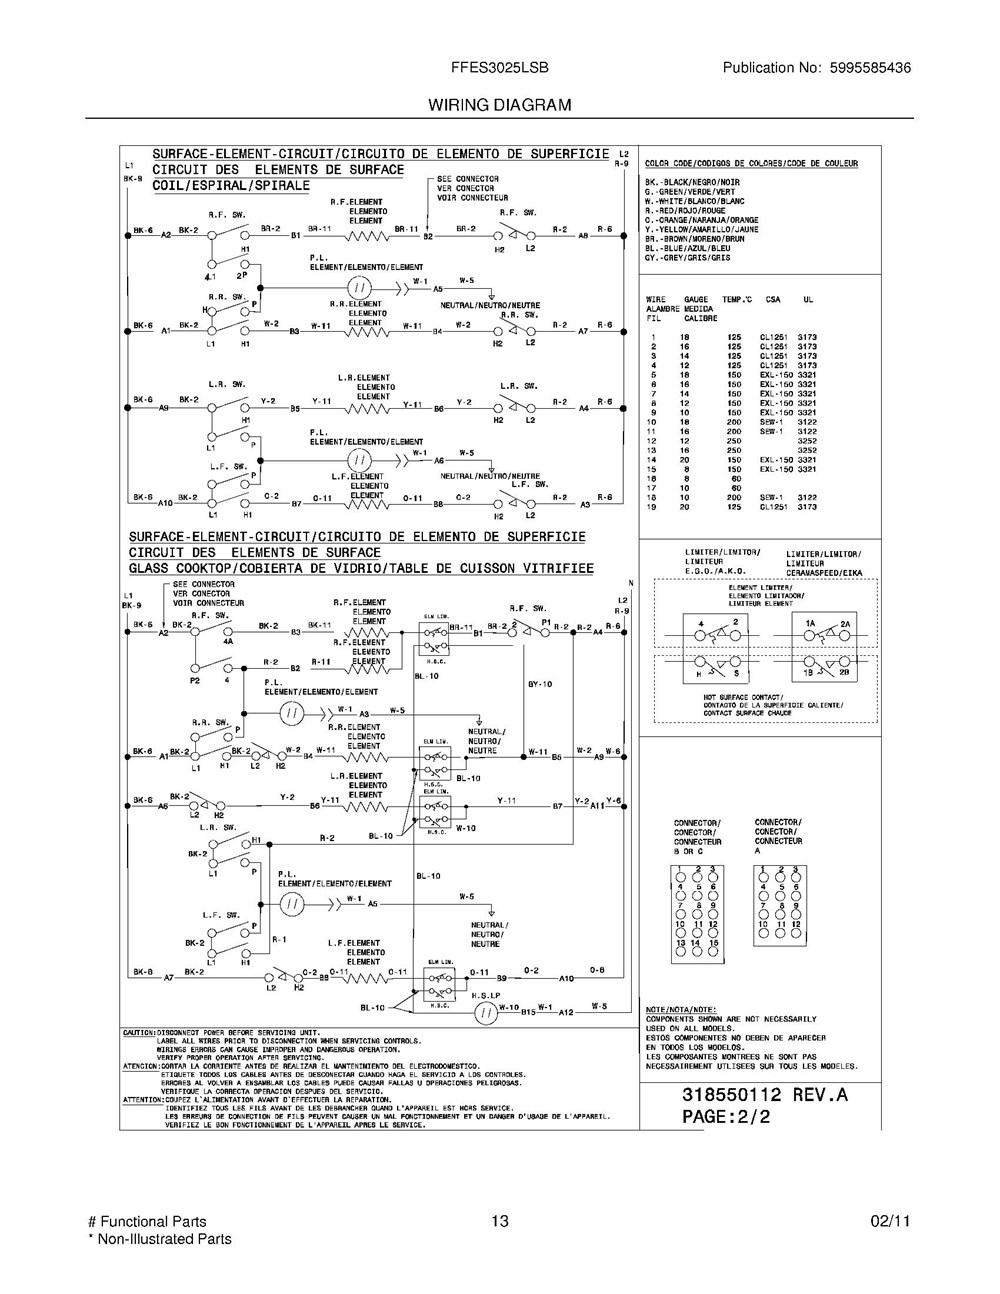 Ffes3025lsb Frigidaire Company 07top Drawer 09door 01cover 10wiring Diagram 11wiring